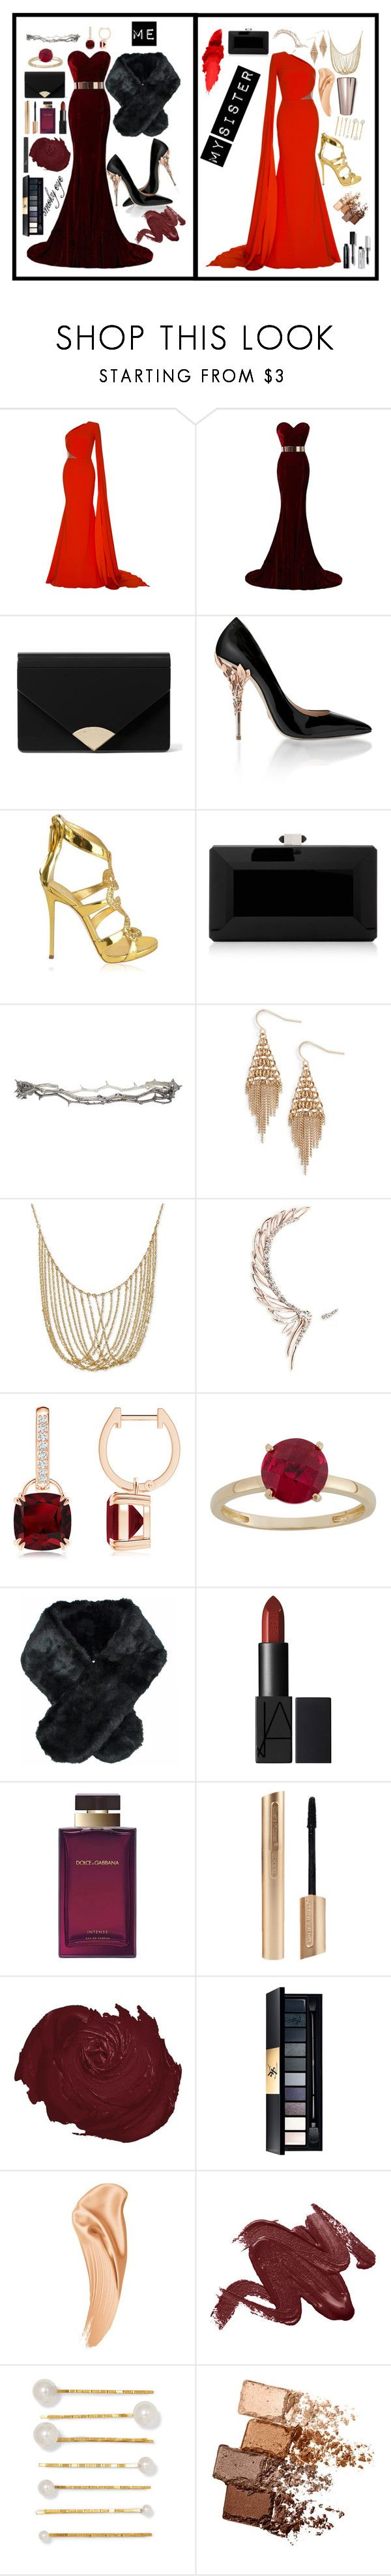 """""""My sister and I"""" by hschommer on Polyvore featuring Alex Perry, MICHAEL Michael Kors, Ralph & Russo, Giuseppe Zanotti, Judith Leiber, Pearls Before Swine, Treasure & Bond, Cristina Ortiz, Jeanne Simmons and Dolce&Gabbana"""